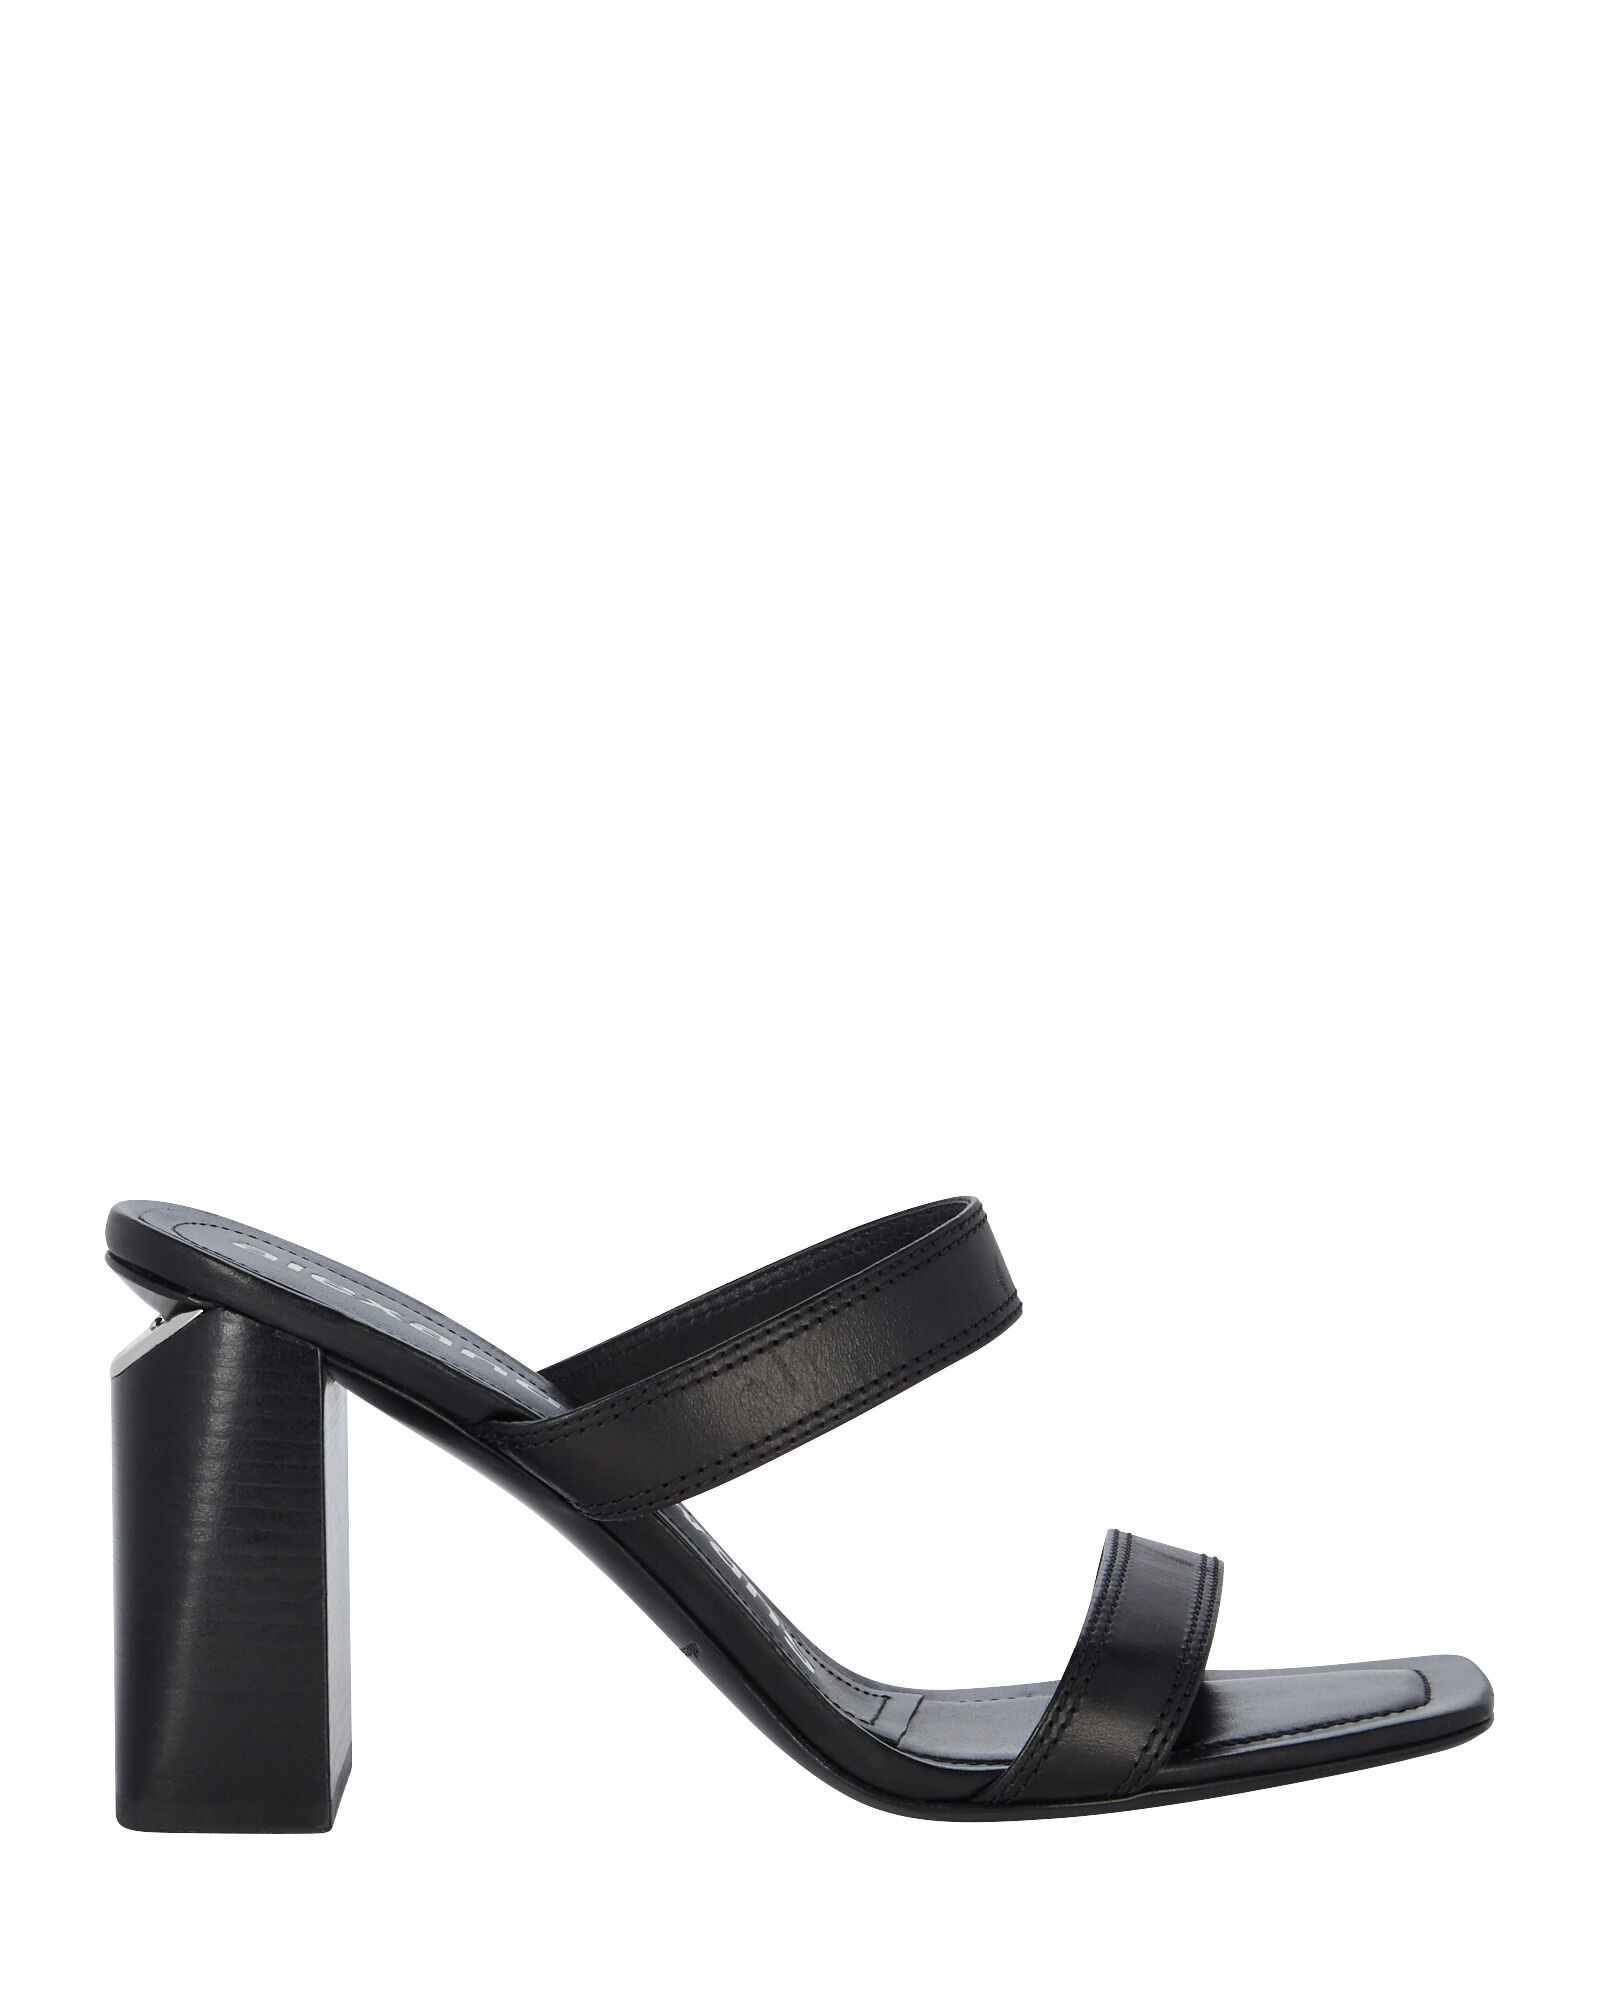 Hayden Slide Sandals, BLACK, hi-res